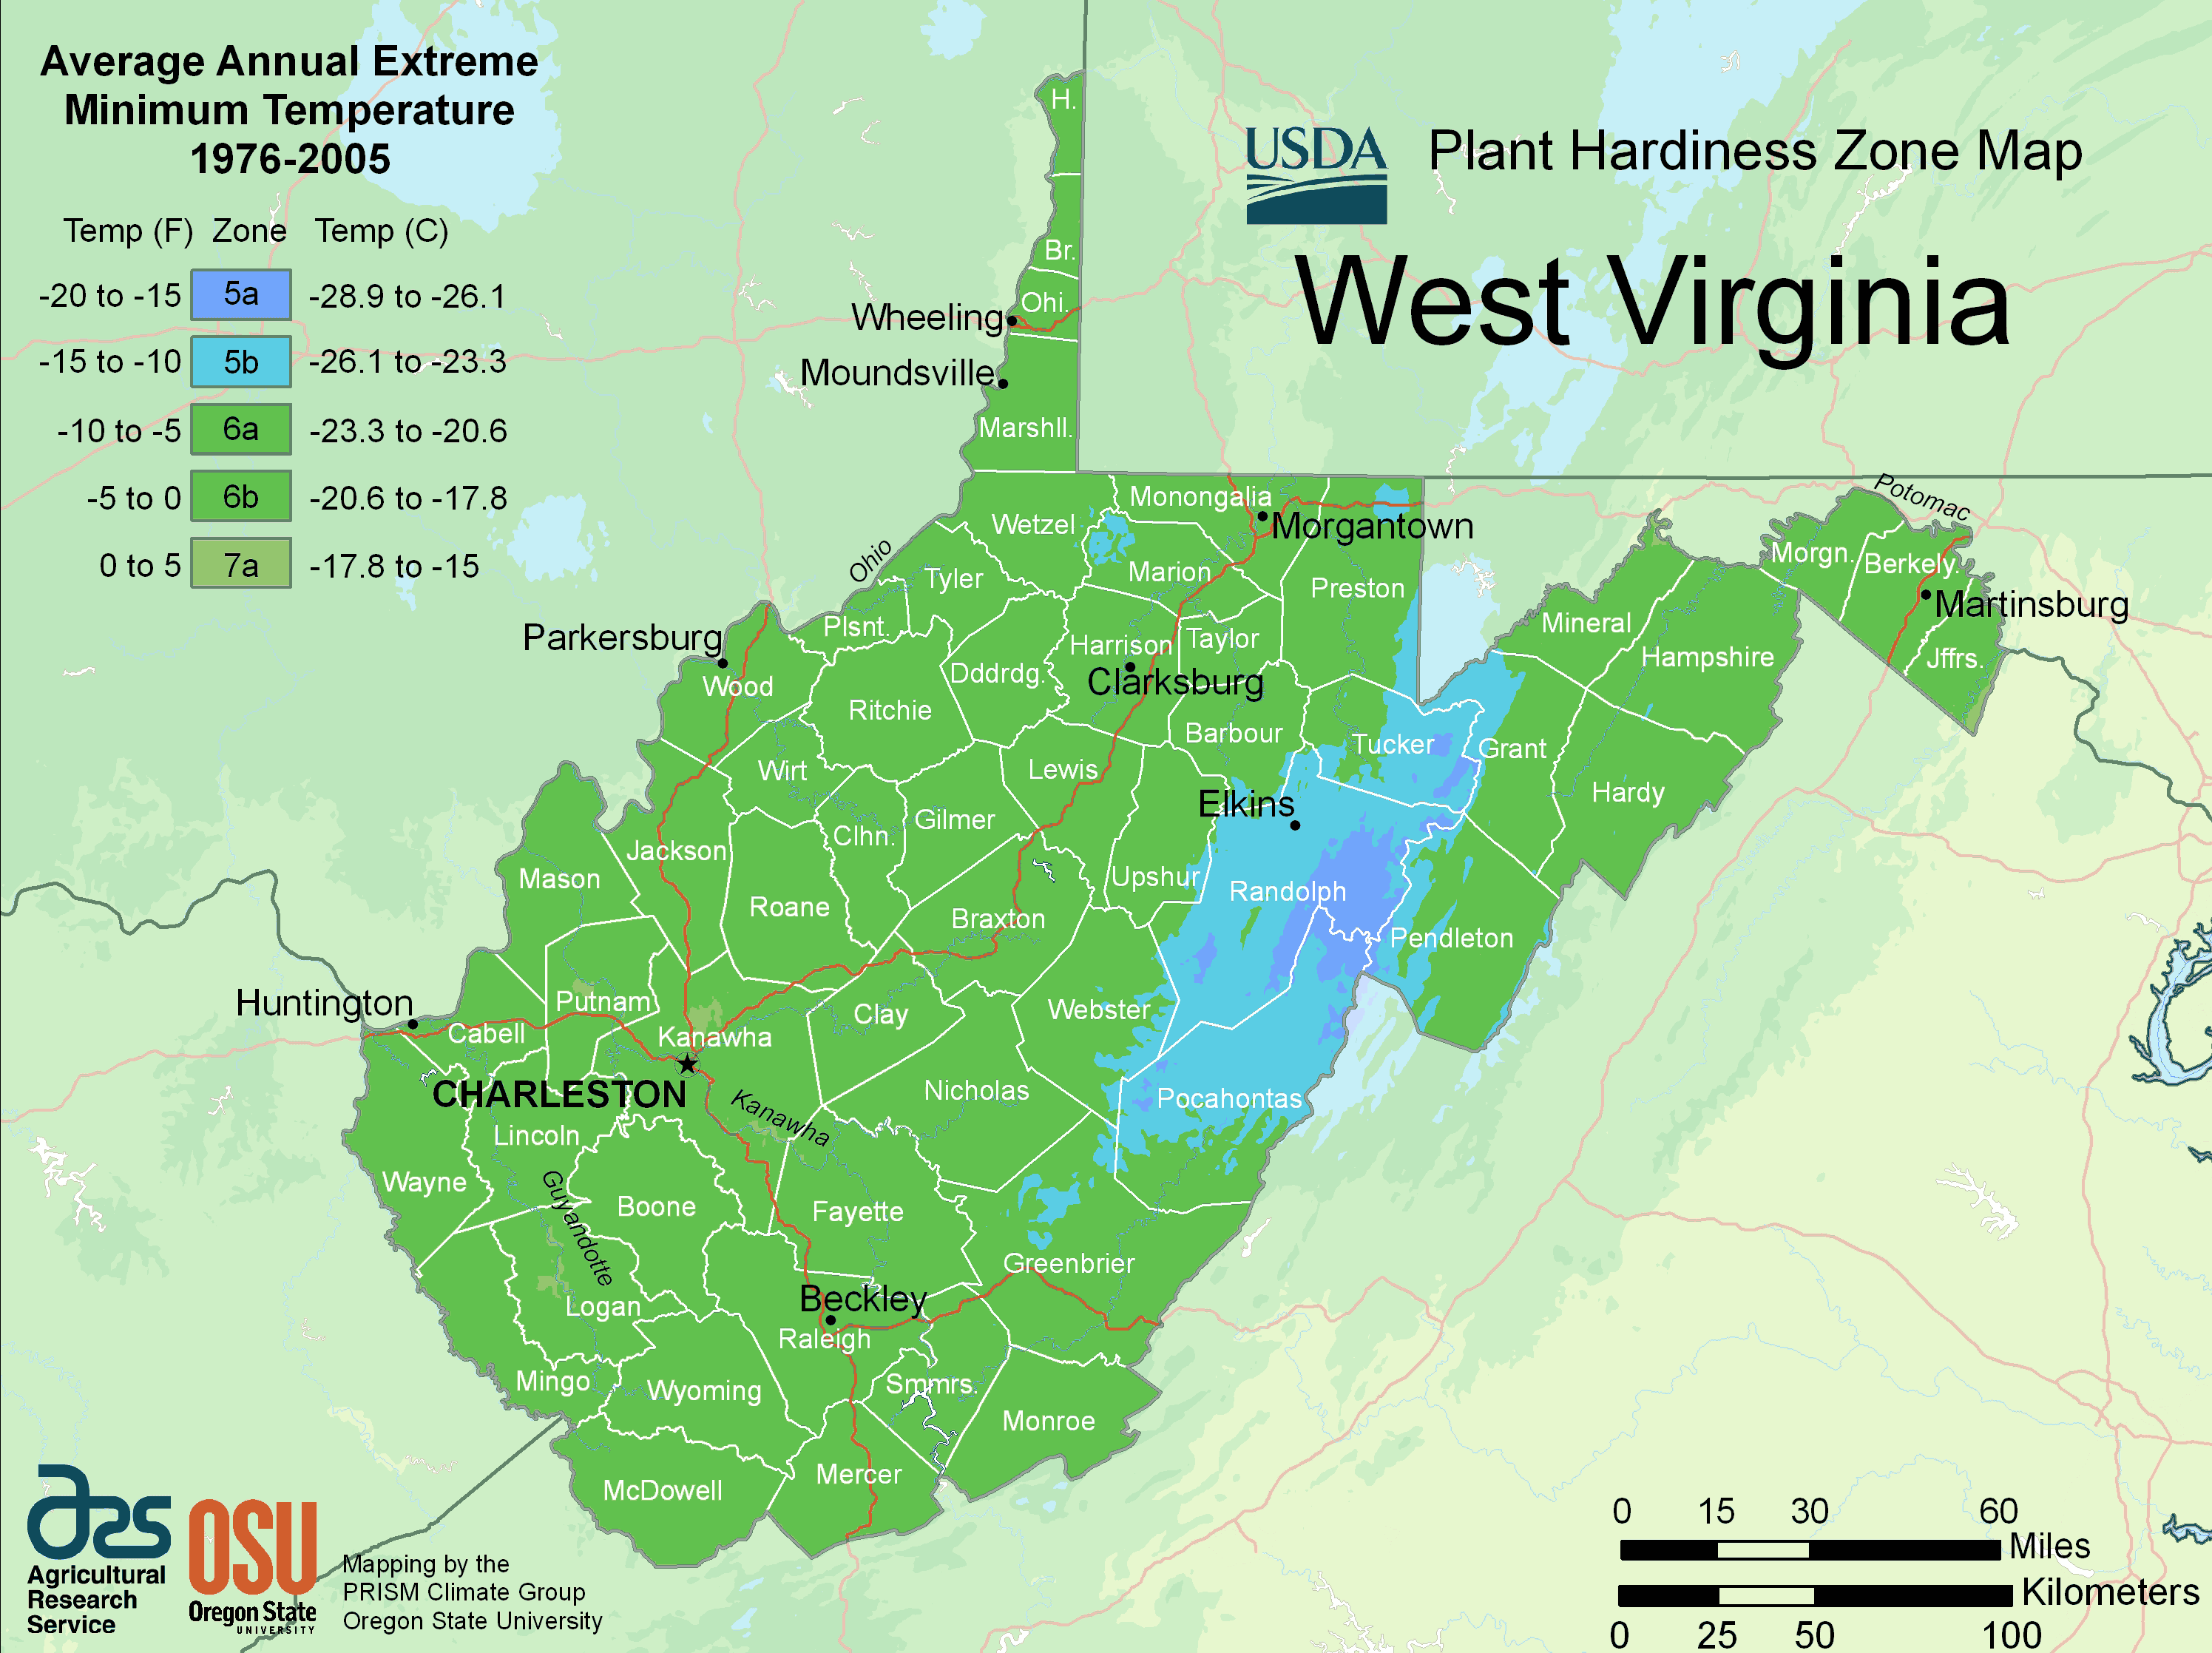 West Virginia Plant Hardiness Zone Map